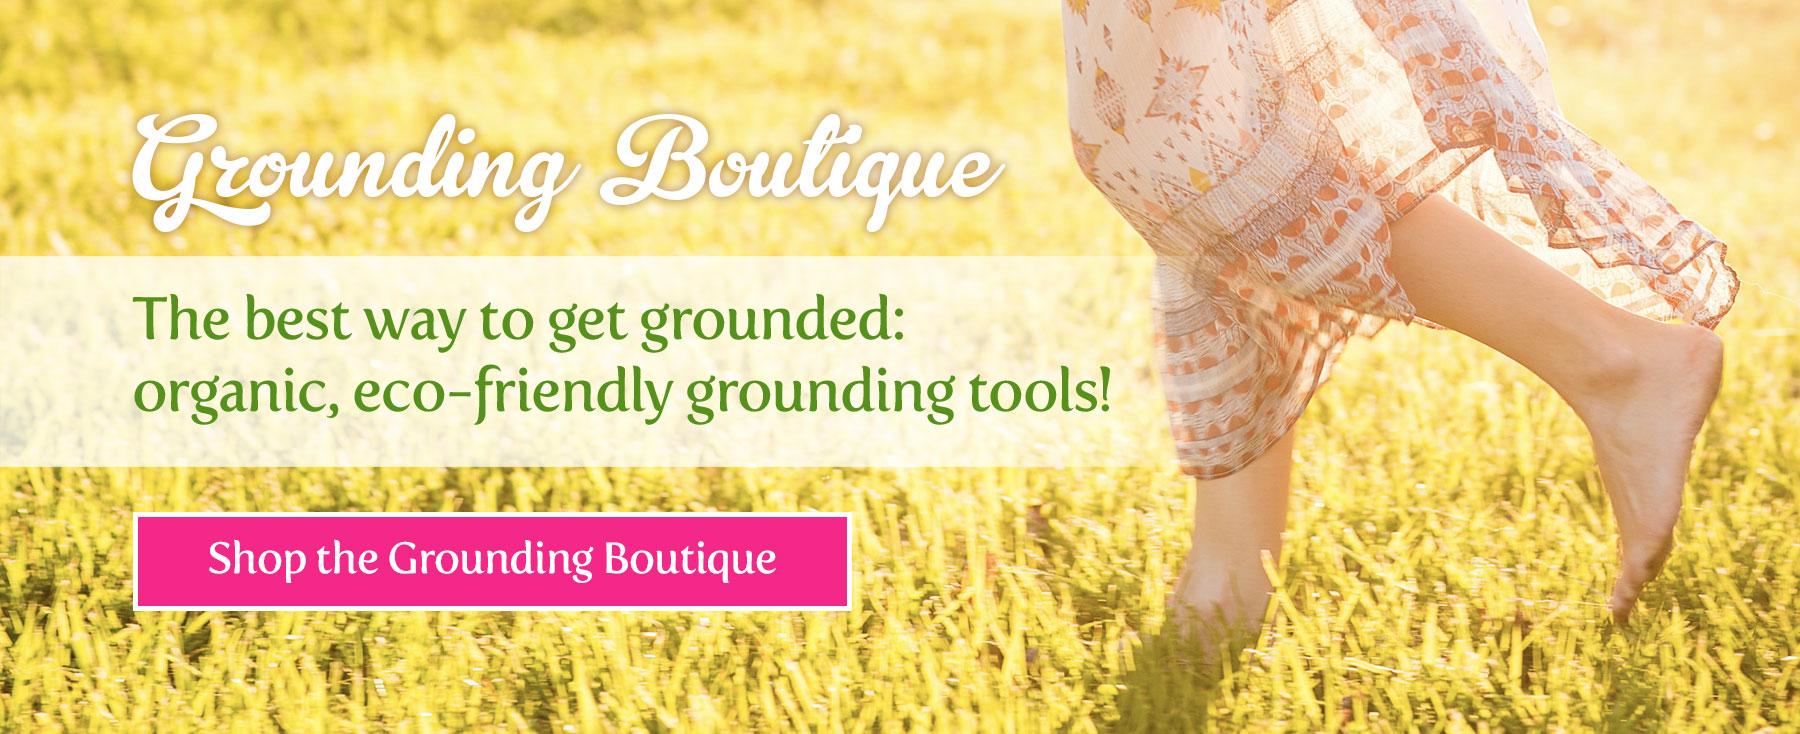 Grounding Boutique